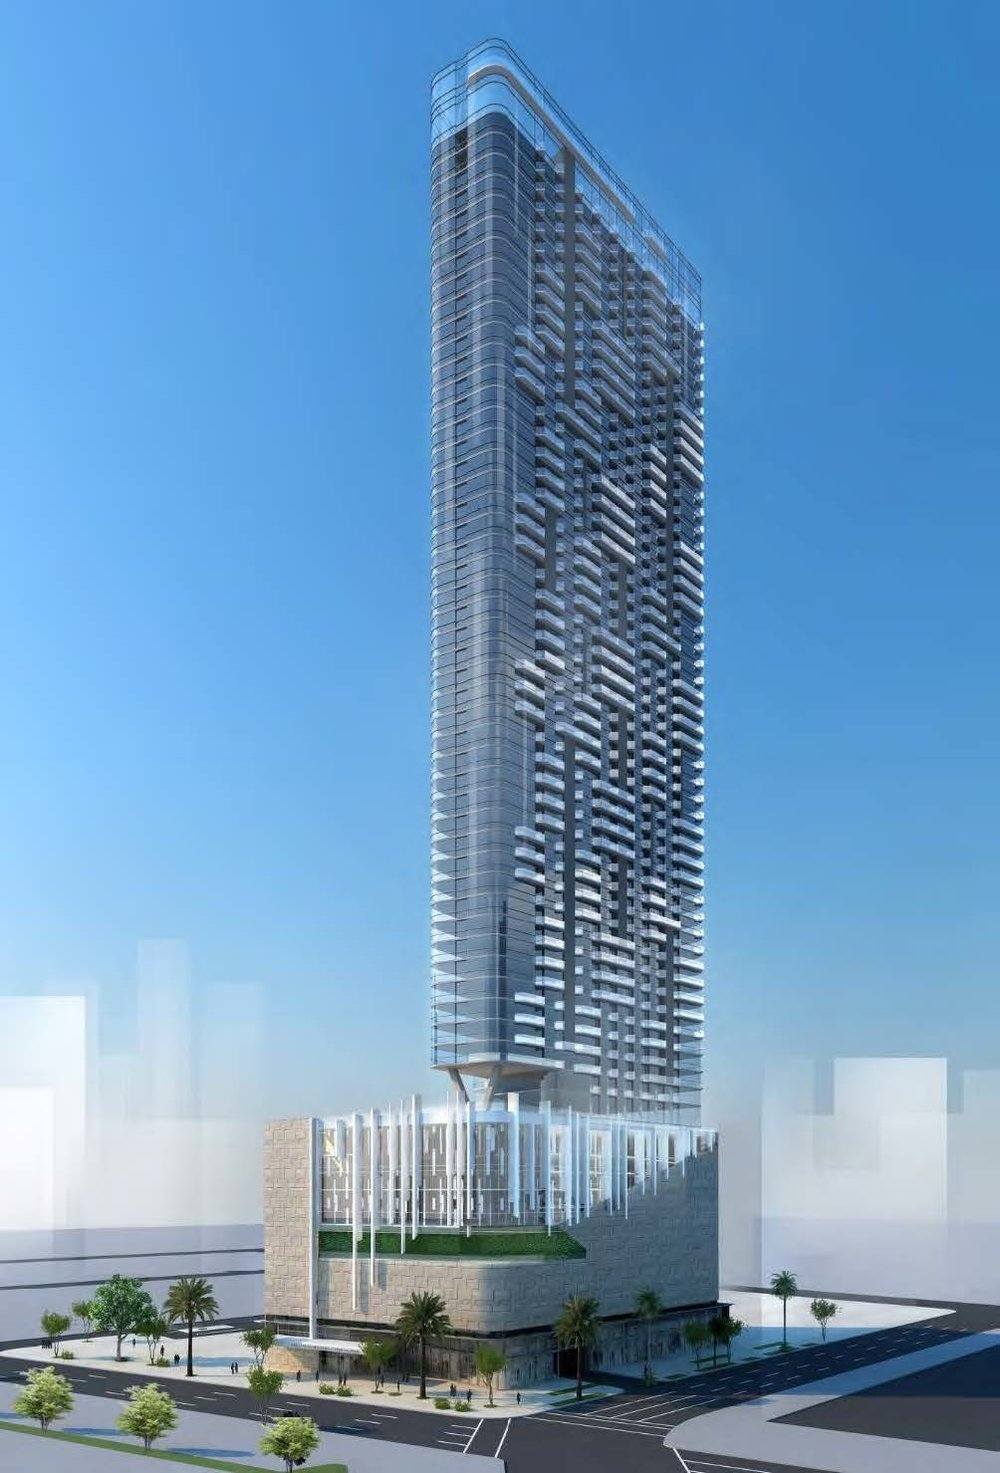 PMG Announces Official Acquisition of 400 Biscayne and Plan For XSC Social Community Residential Tower